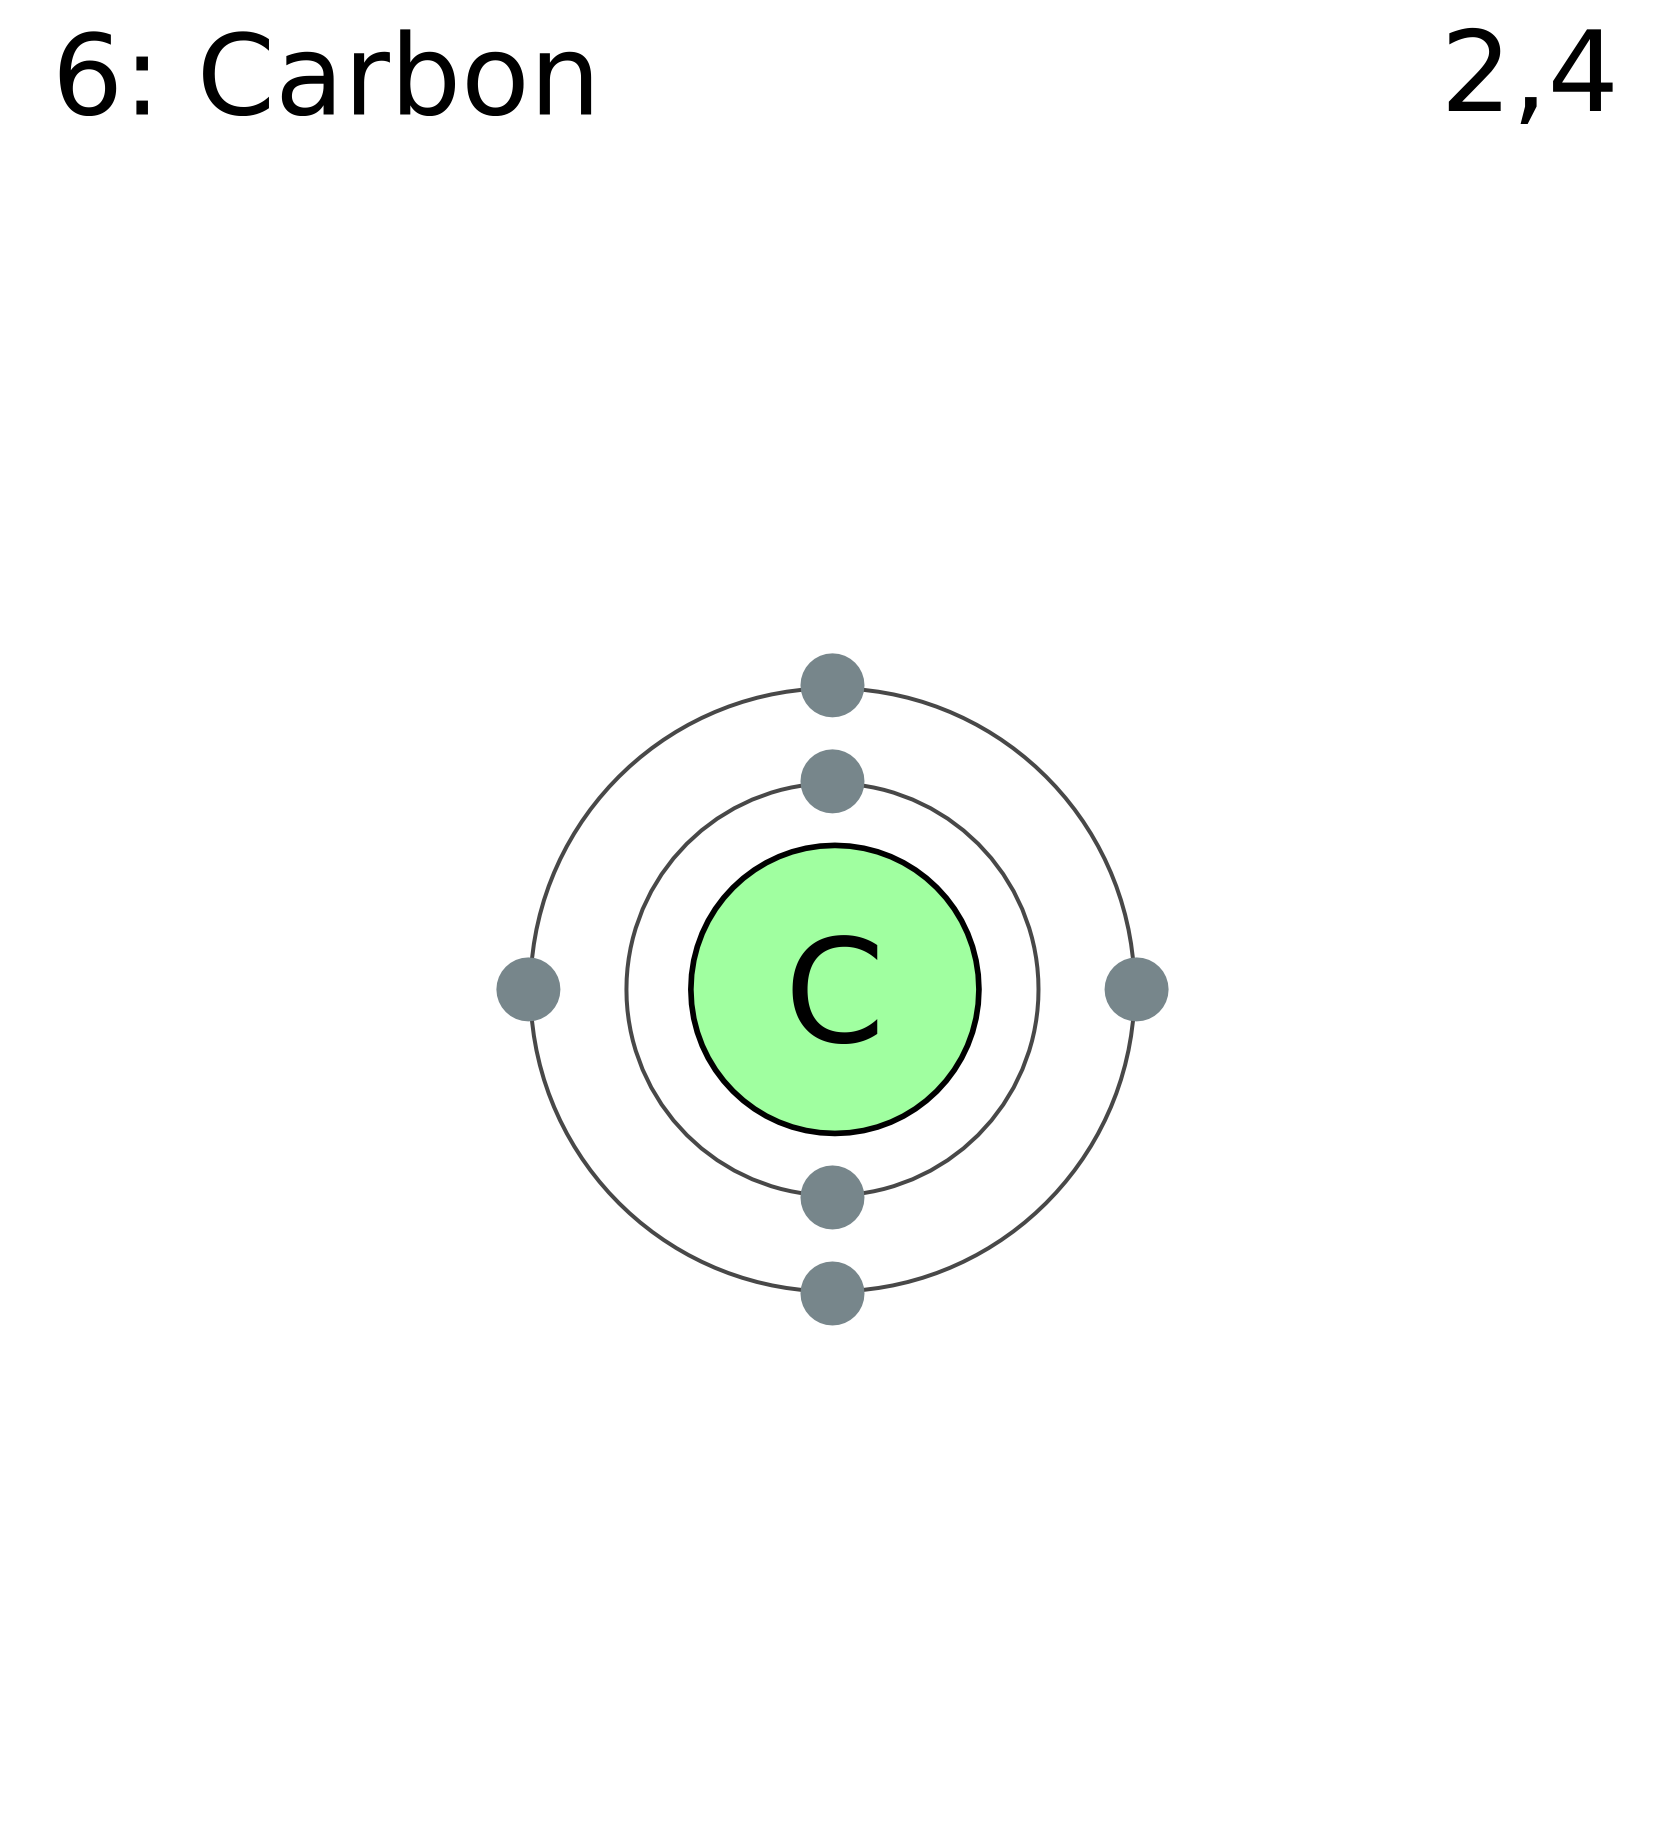 carbon atom by Greg Robson